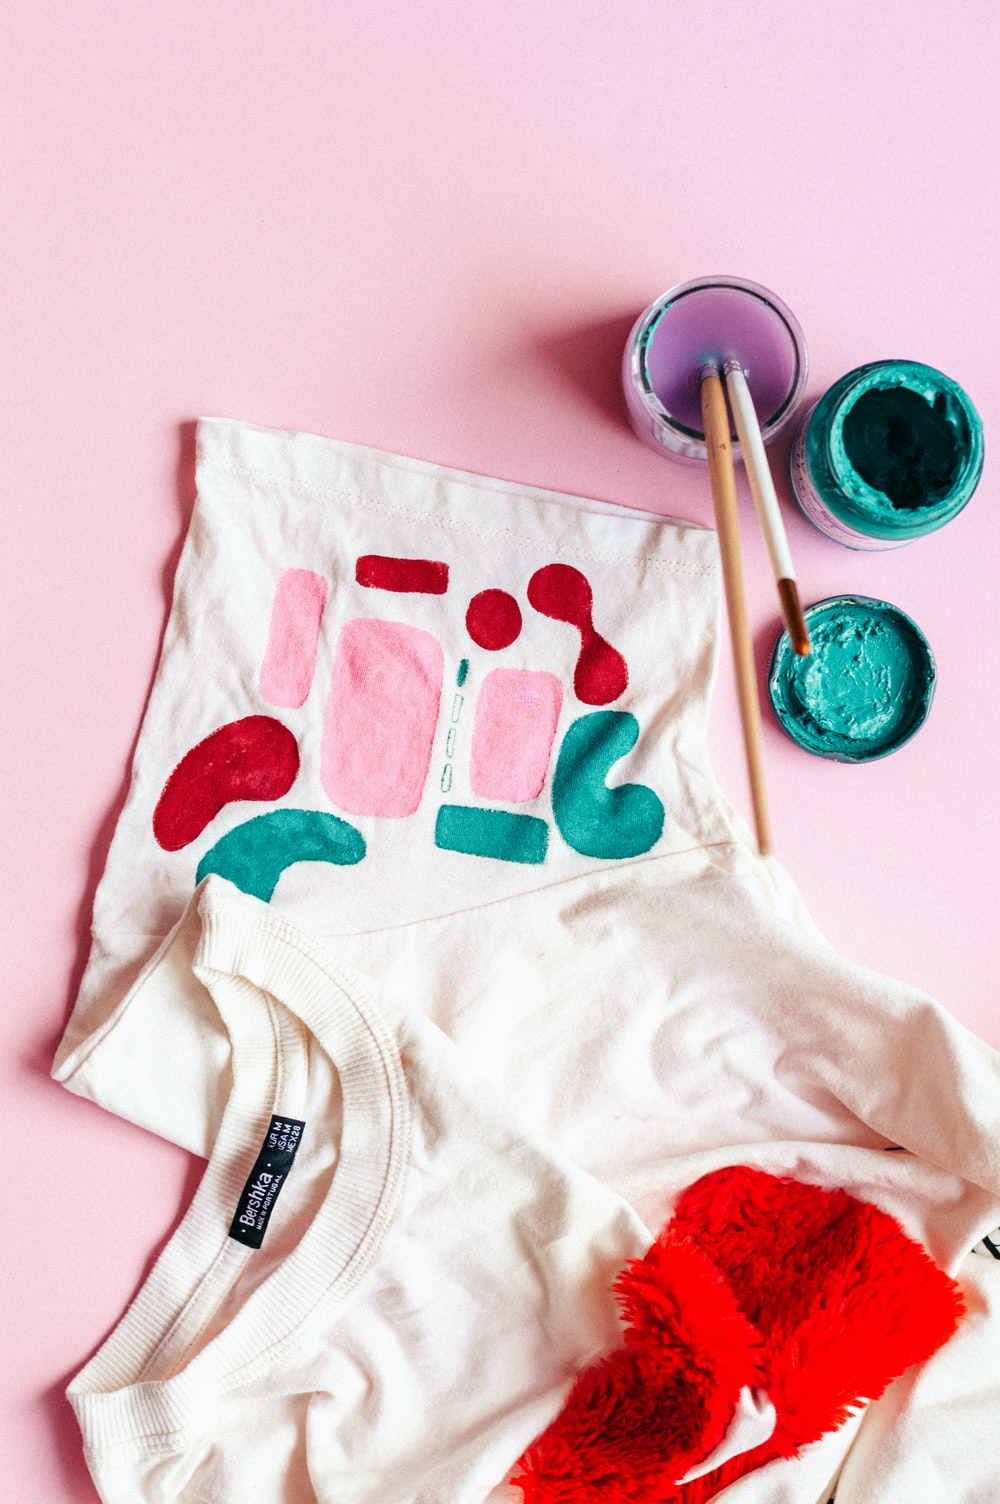 white and red crew-neck shirt beside paint with brushes